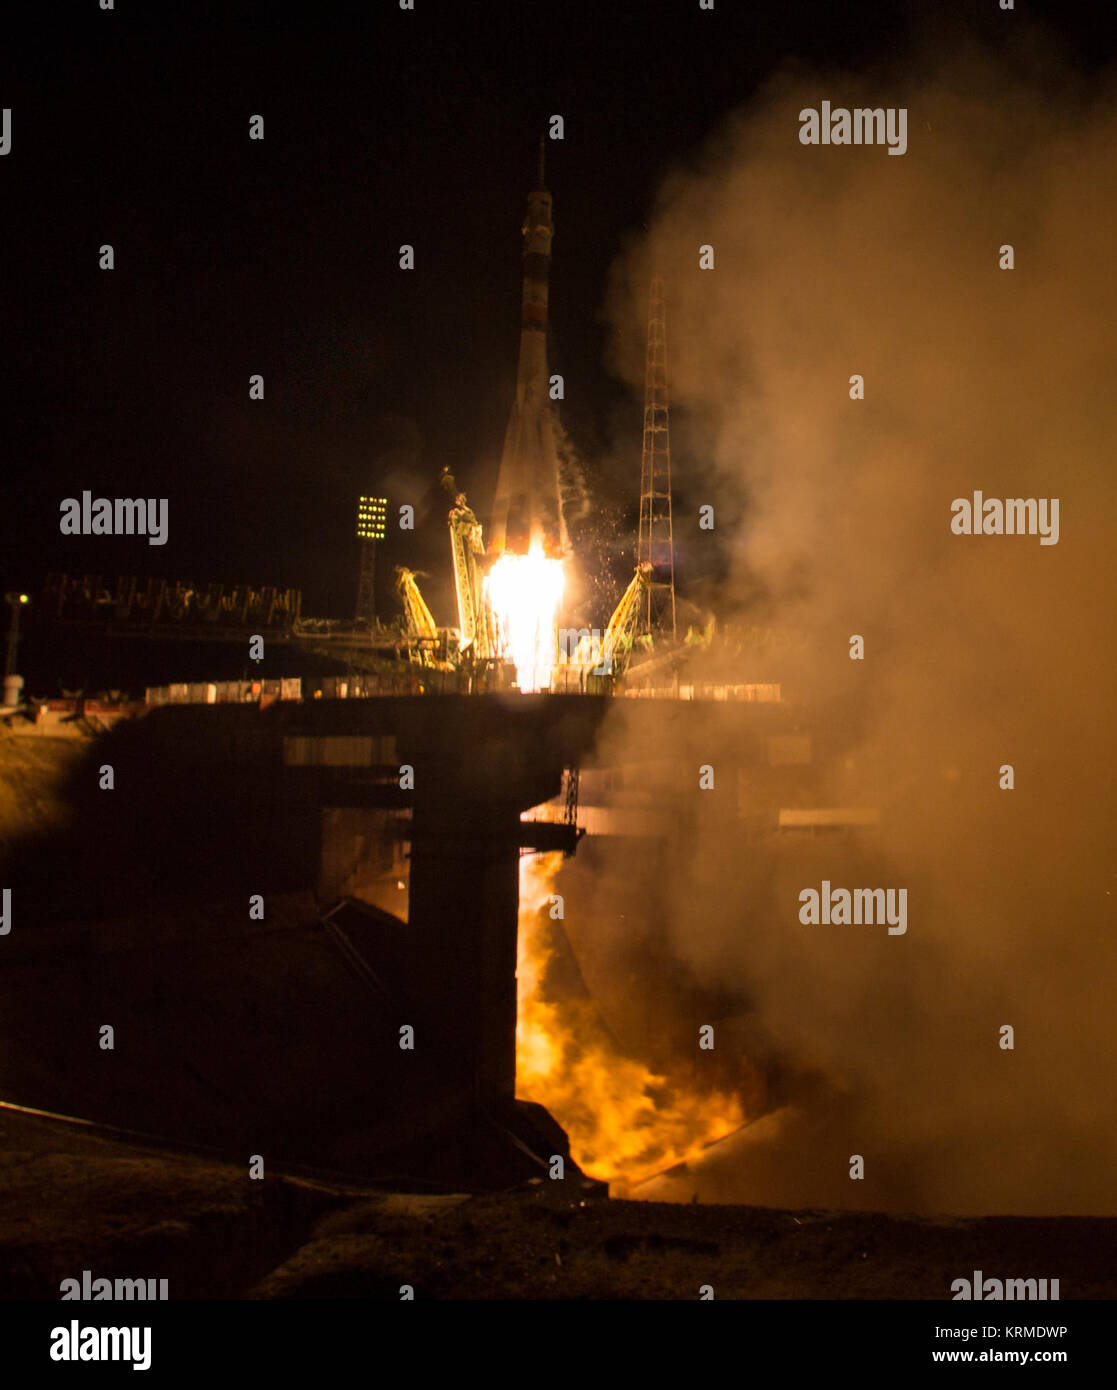 The Soyuz TMA-20M rocket launches from the Baikonur Cosmodrome in Kazakhstan on Saturday, March 19, 2016 carrying - Stock Image